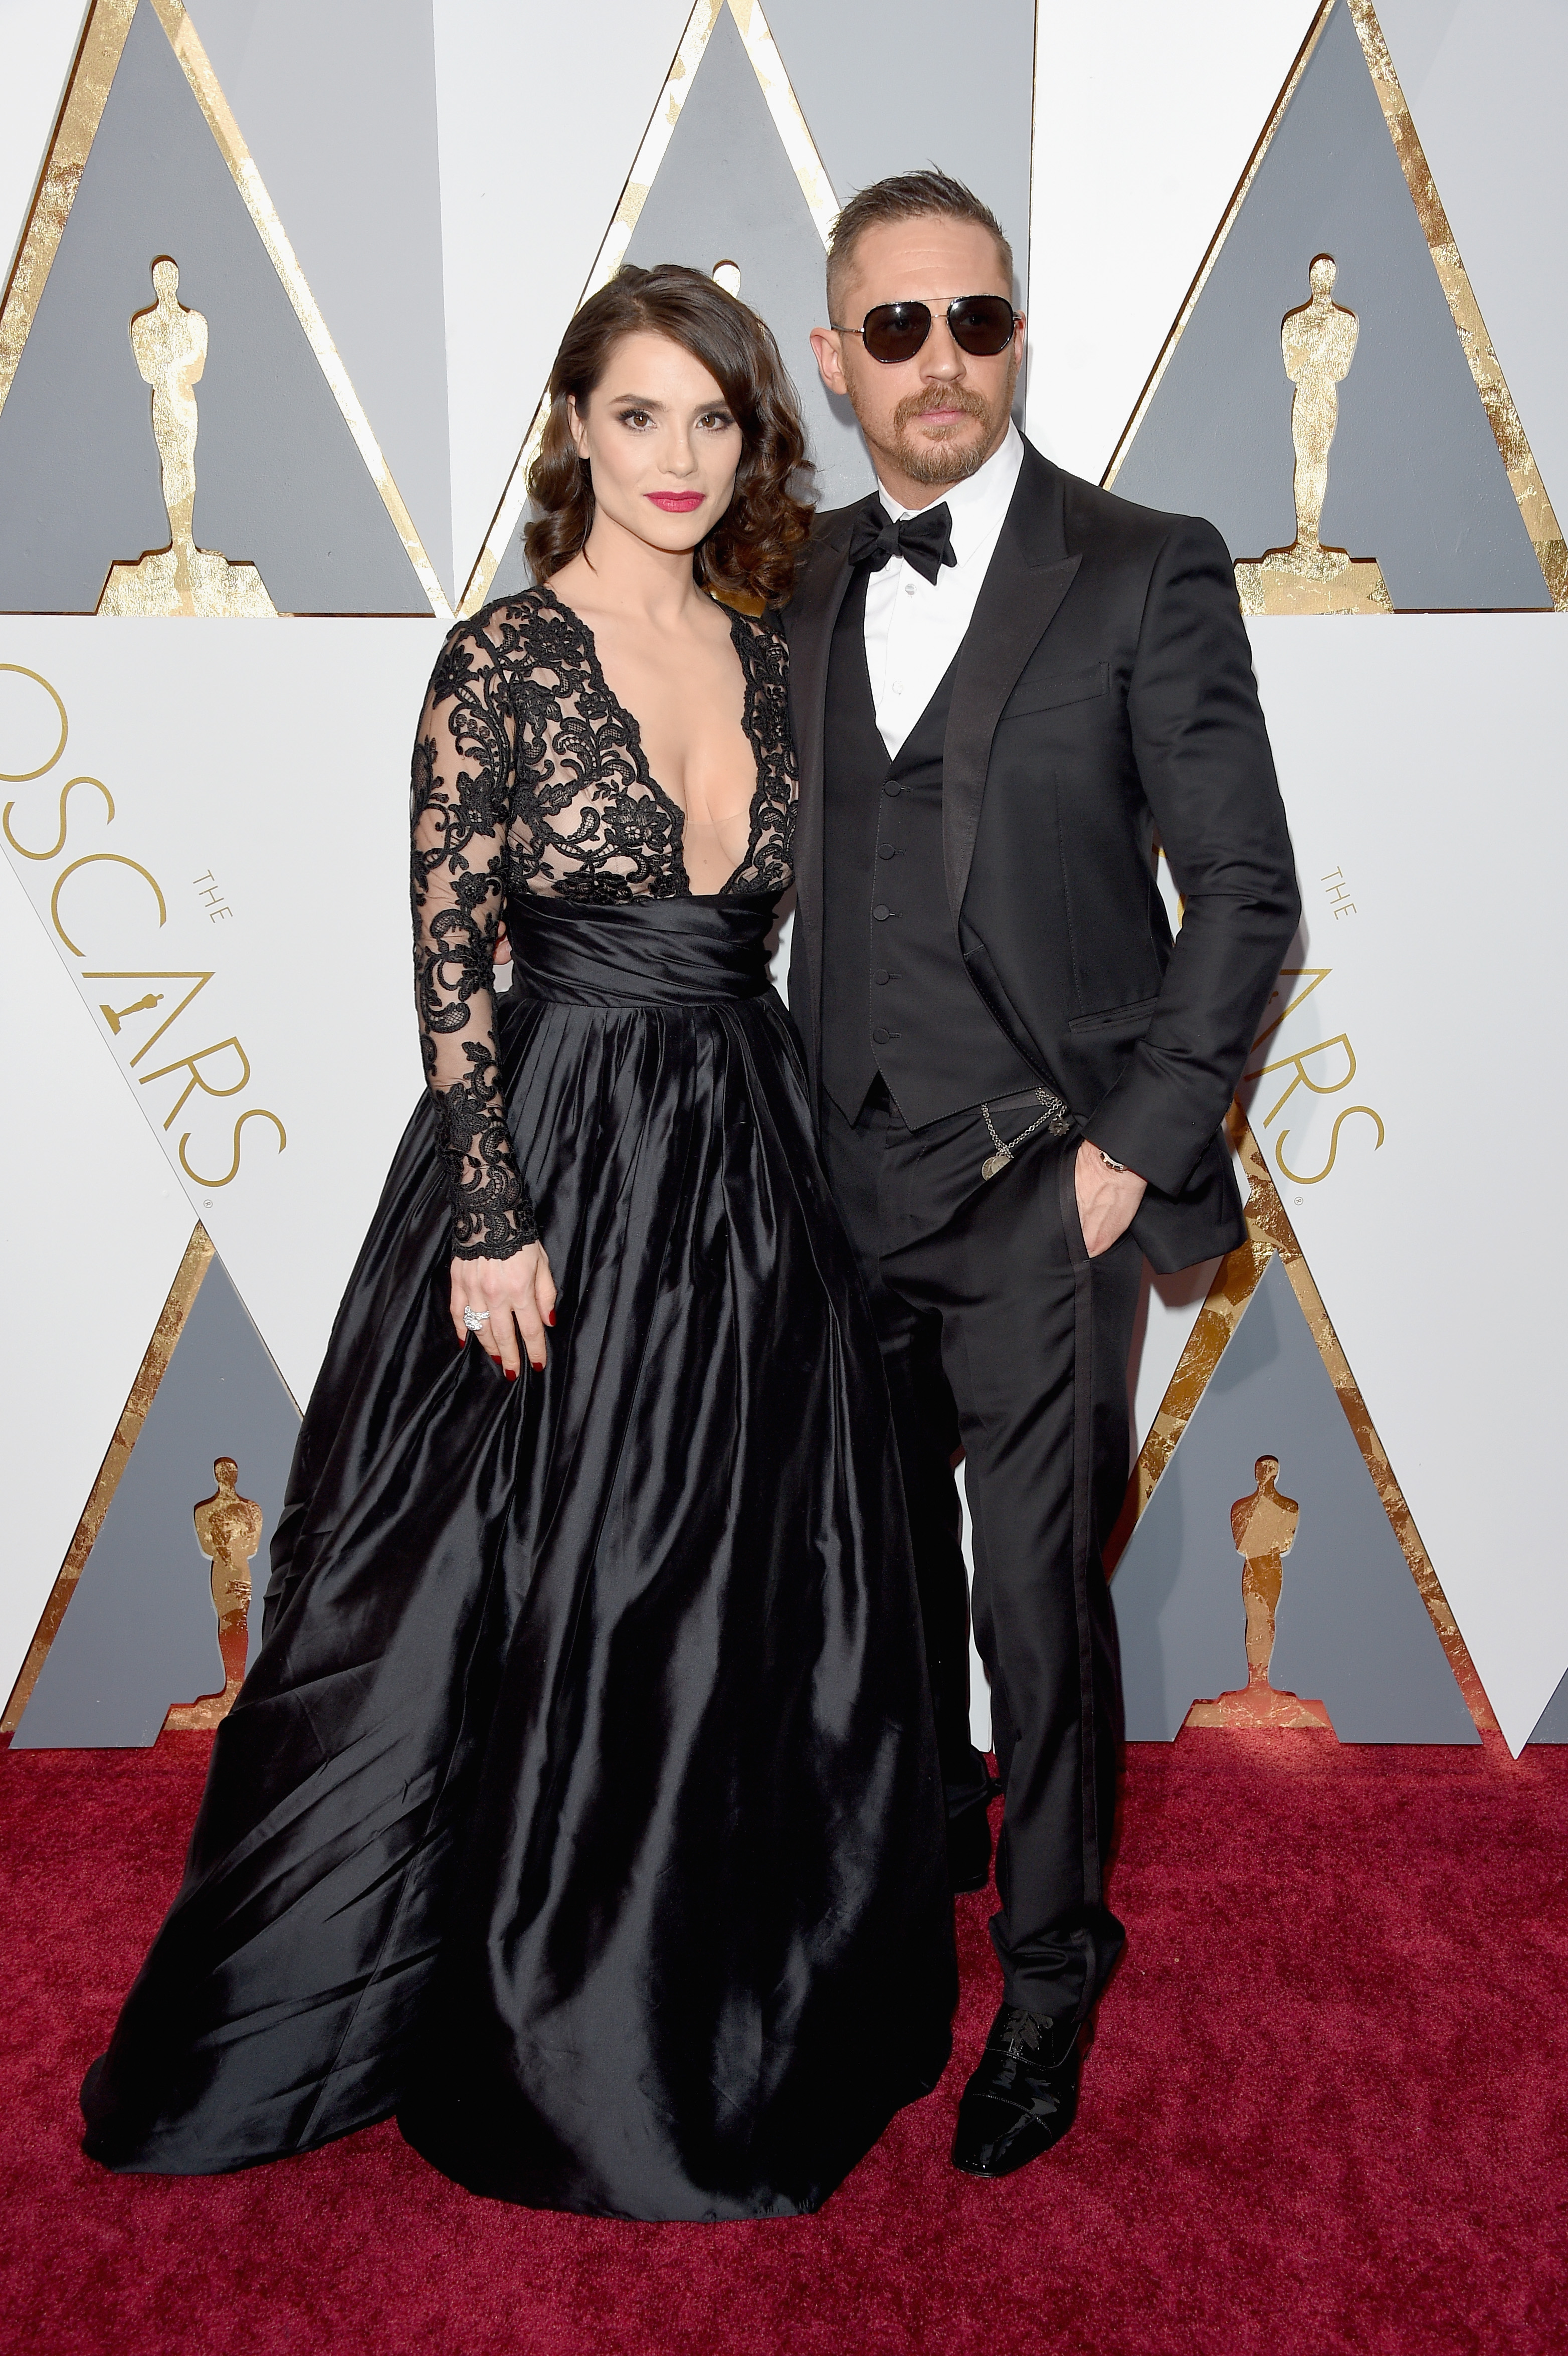 Charlotte Riley and Tom Hardy attend the 88th Annual Academy Awards on Feb. 28, 2016 in Hollywood, Calif.